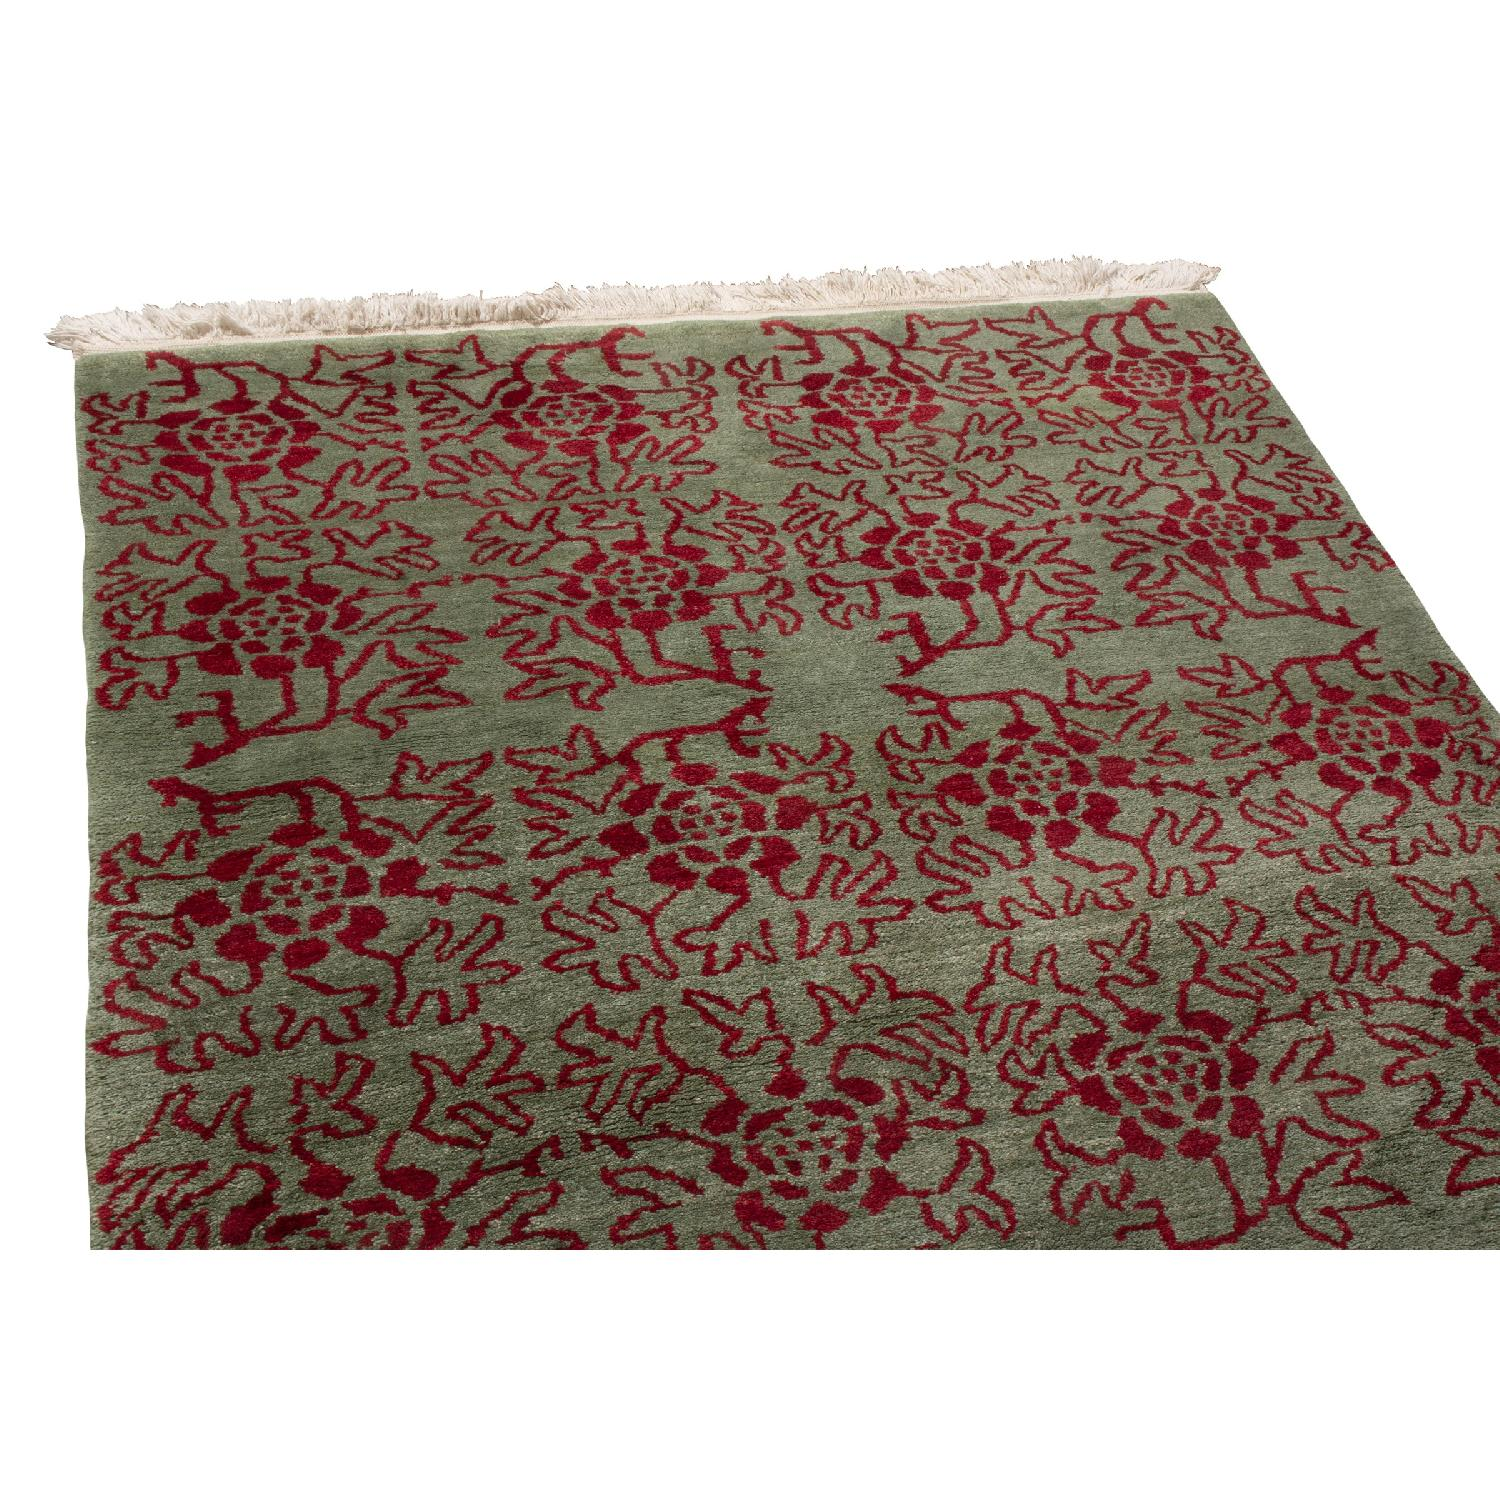 Transitional Green & Red Floral Wool Rug - image-1